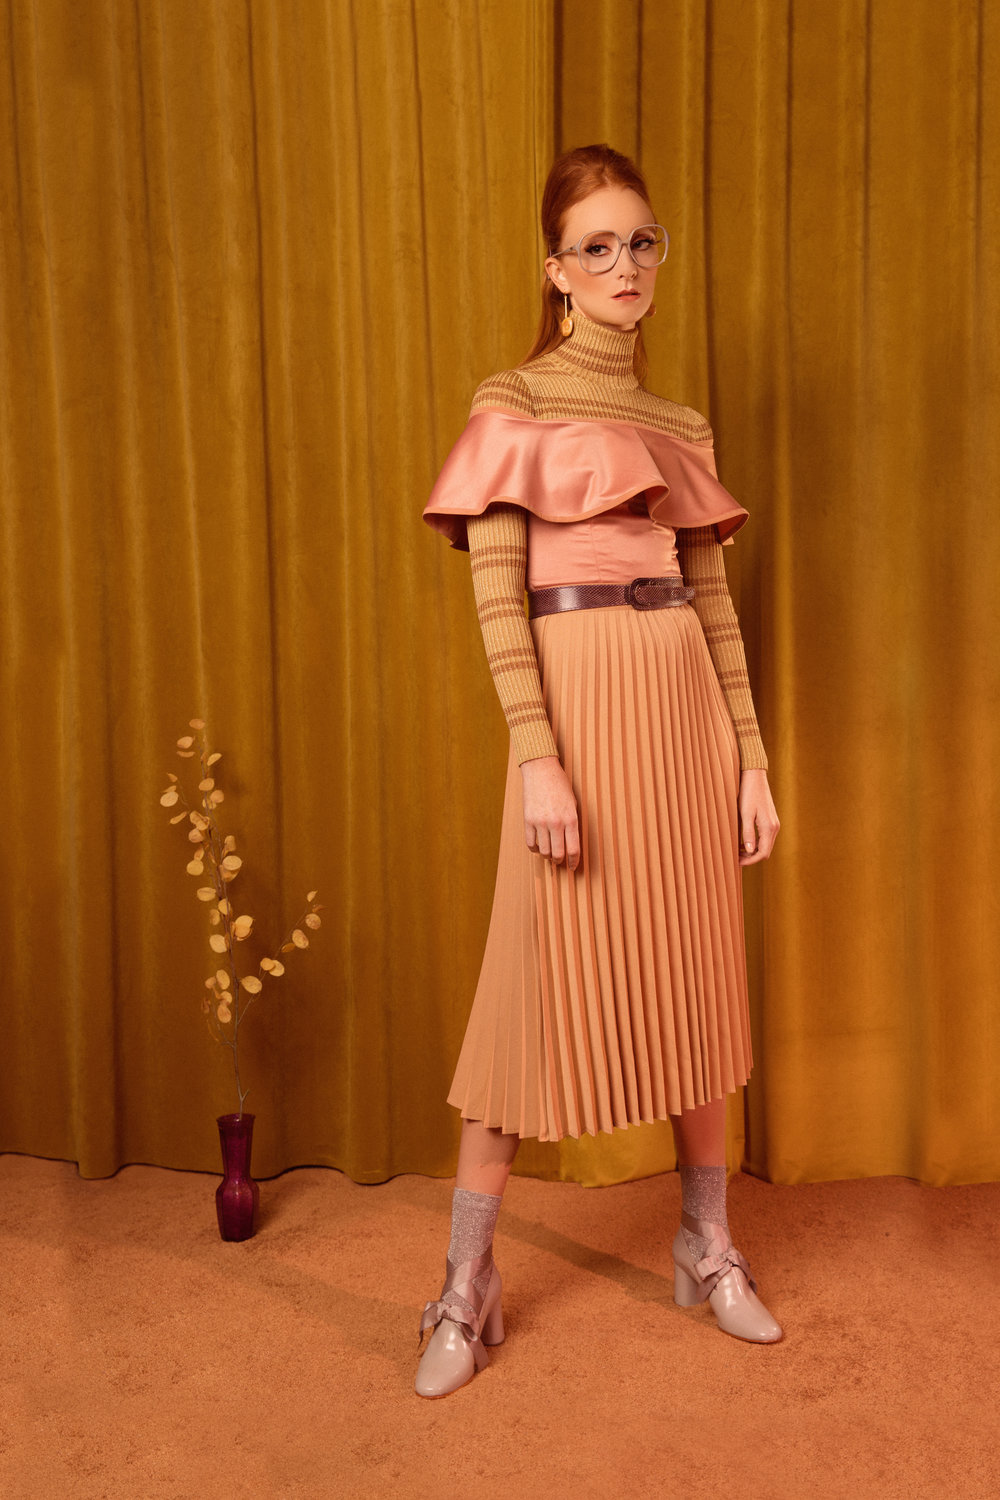 Turtleneck Gucci  Shoes: Rachel Comey  Skirt & Top: Chloe Dao  Earrings: Earthreverie  Socks: Asos